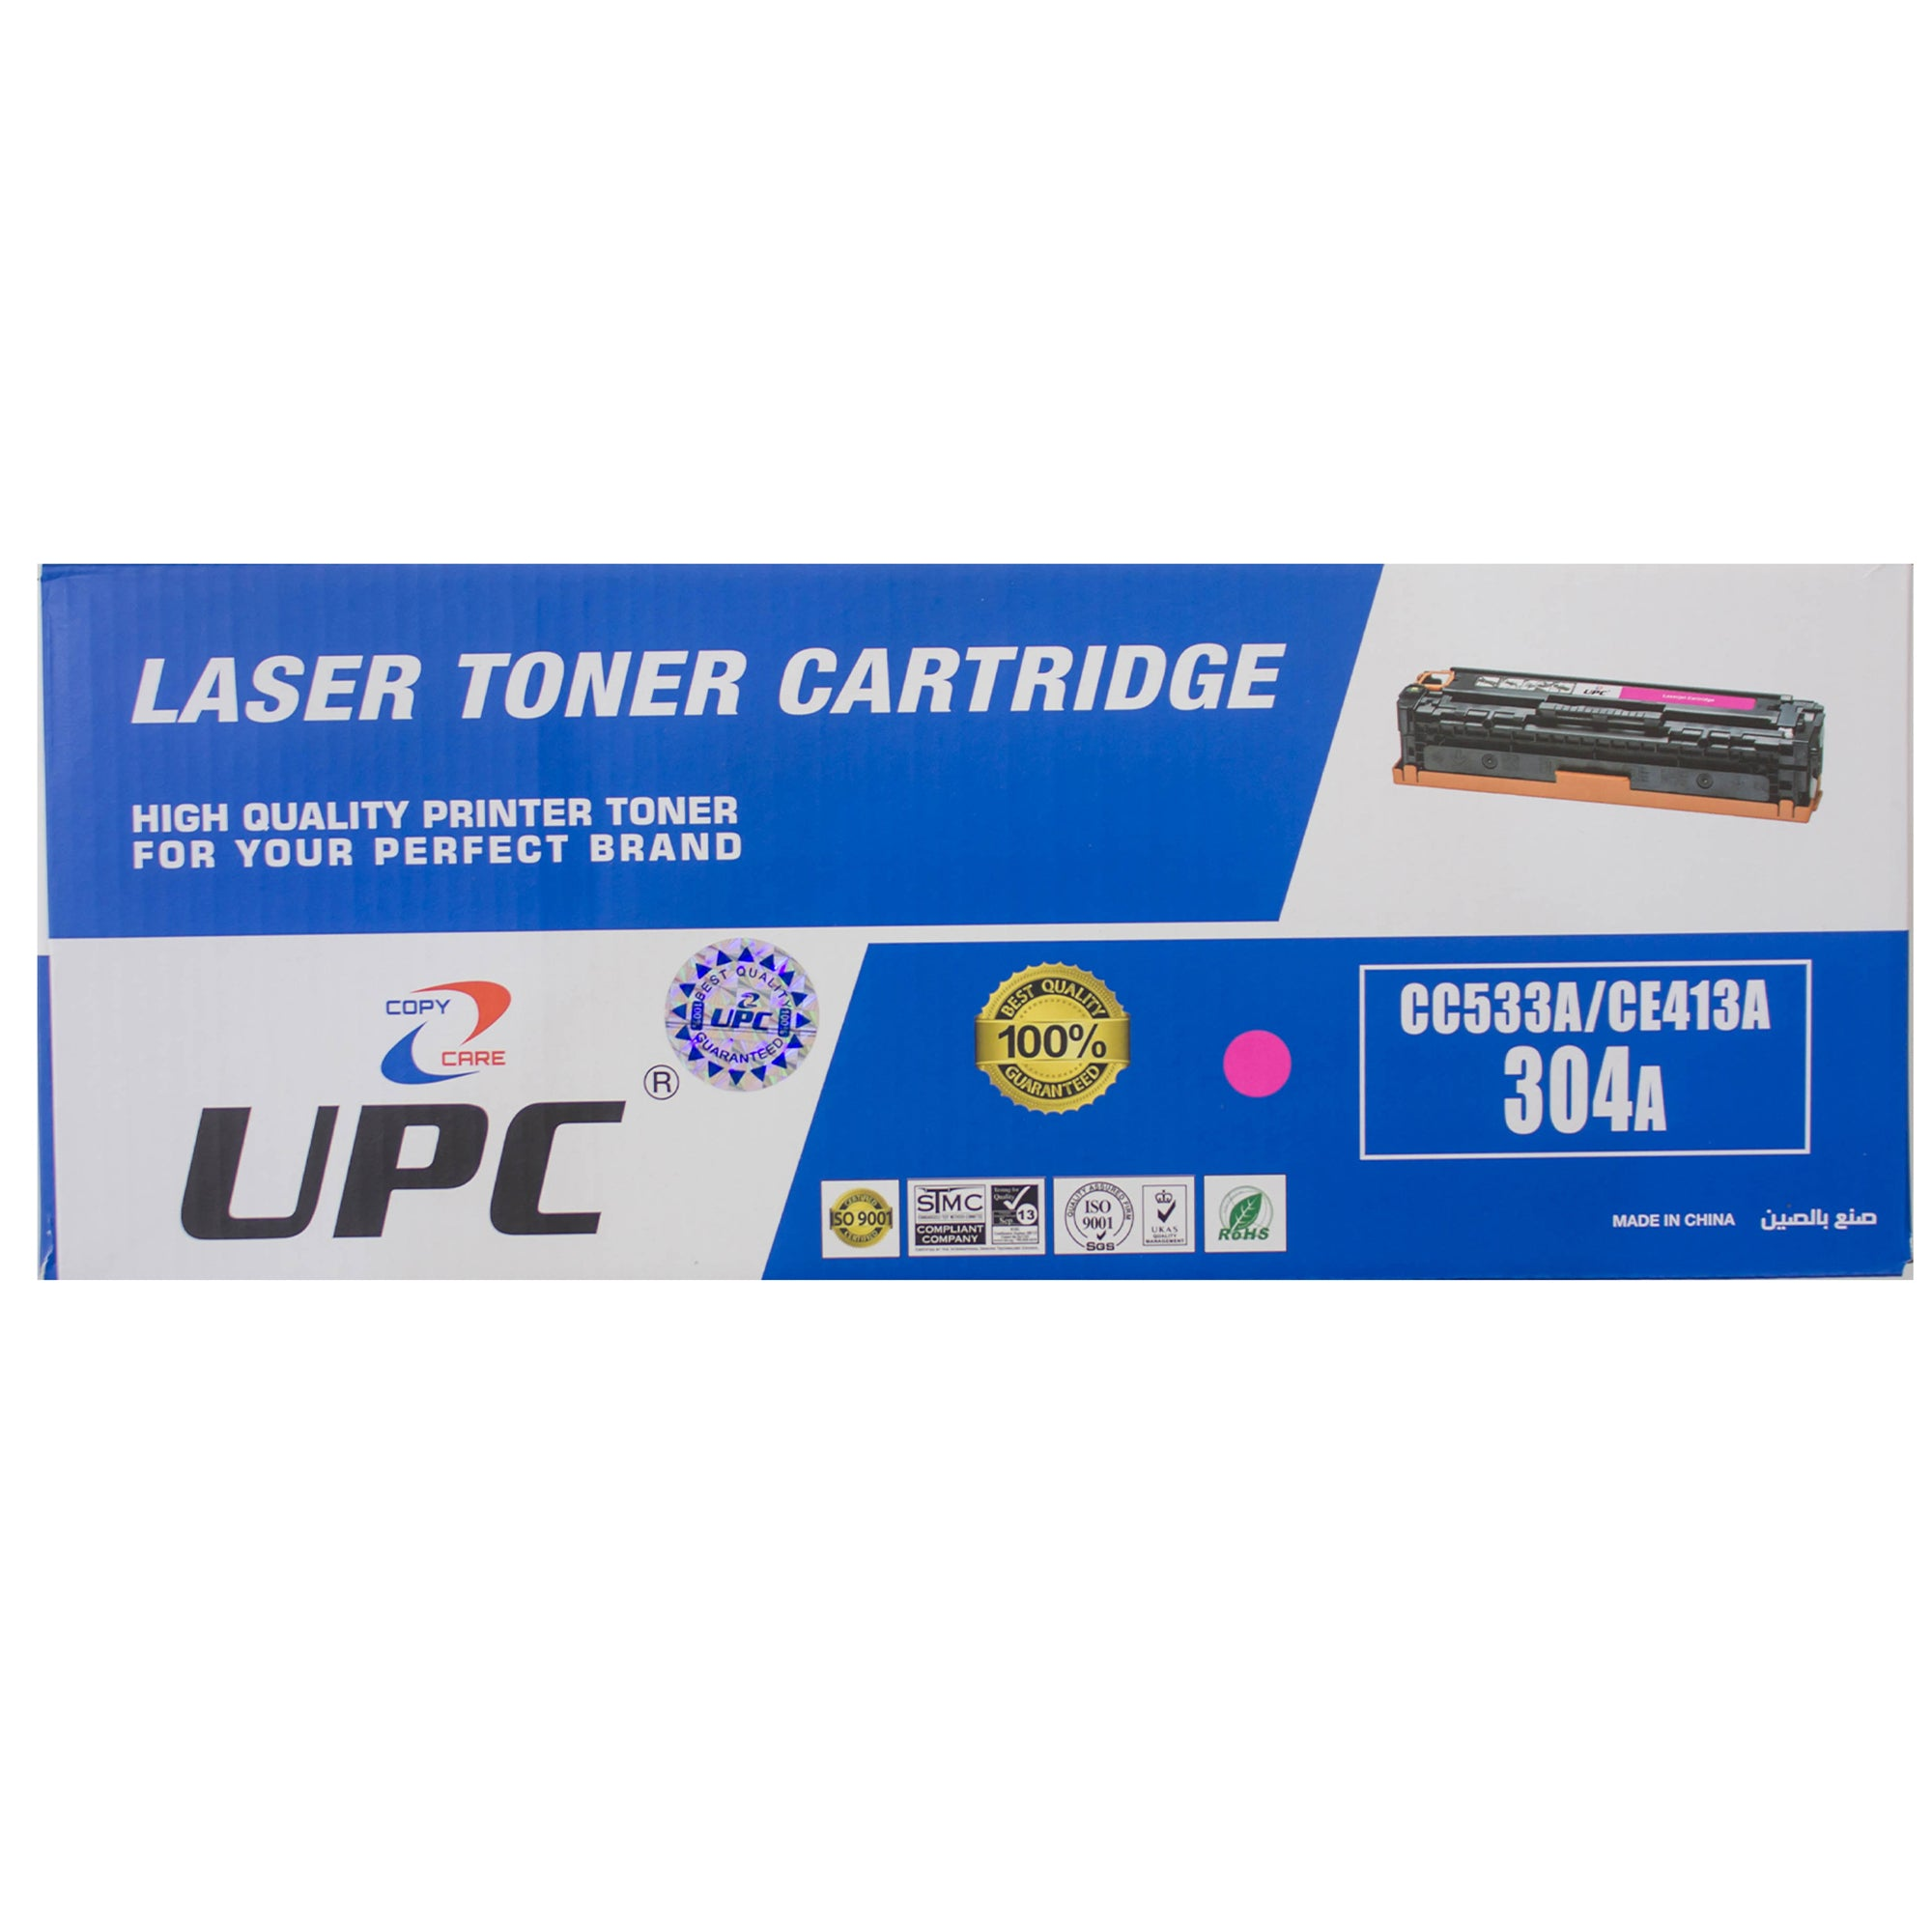 UPC 304A / 305A Laser Toner Cartridge Magenta (CC533A / CE413A) Compatible with HP Laser Printers